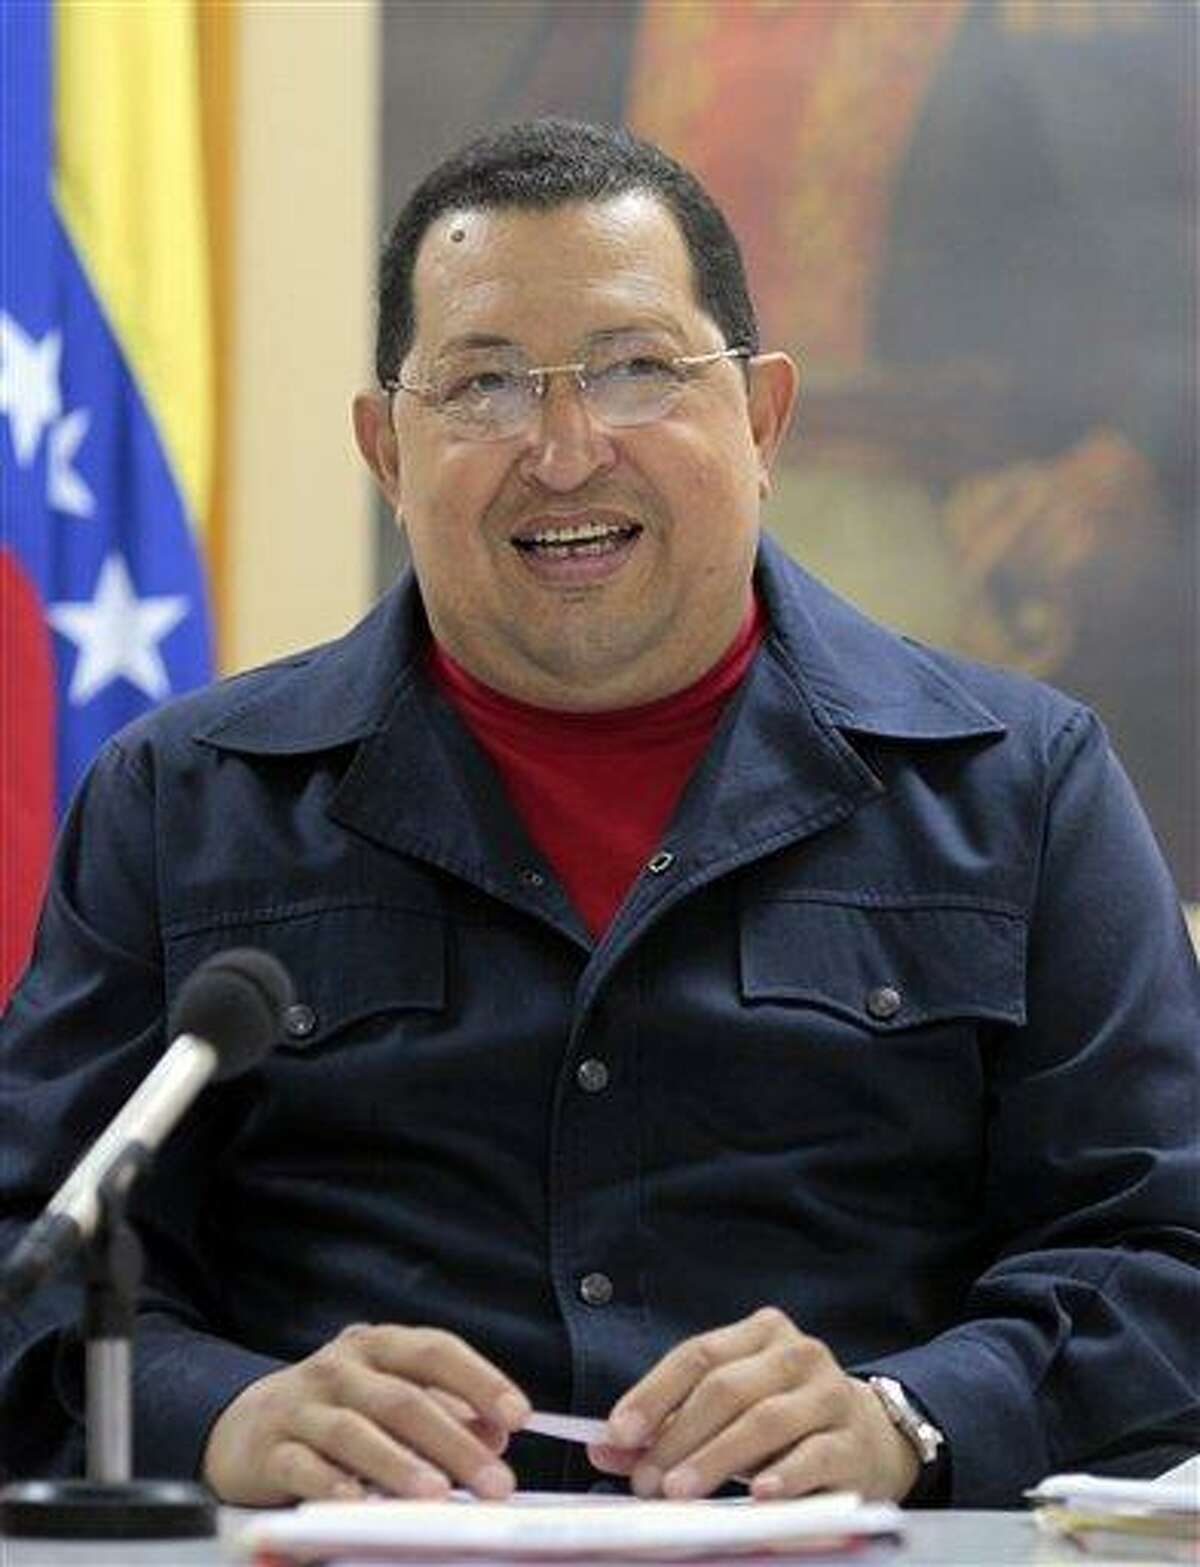 In this photo released by Miraflores Press Office Sunday, Venezuela's President Hugo Chavez speaks during a televised speech at an undisclosed location in Havana, Cuba, Saturday. Chavez appeared Sunday on television for the first time in nine days during which he underwent surgery in Cuba to remove a tumor. Chavez spoke firmly in footage recorded Saturday in Havana. Associated Press